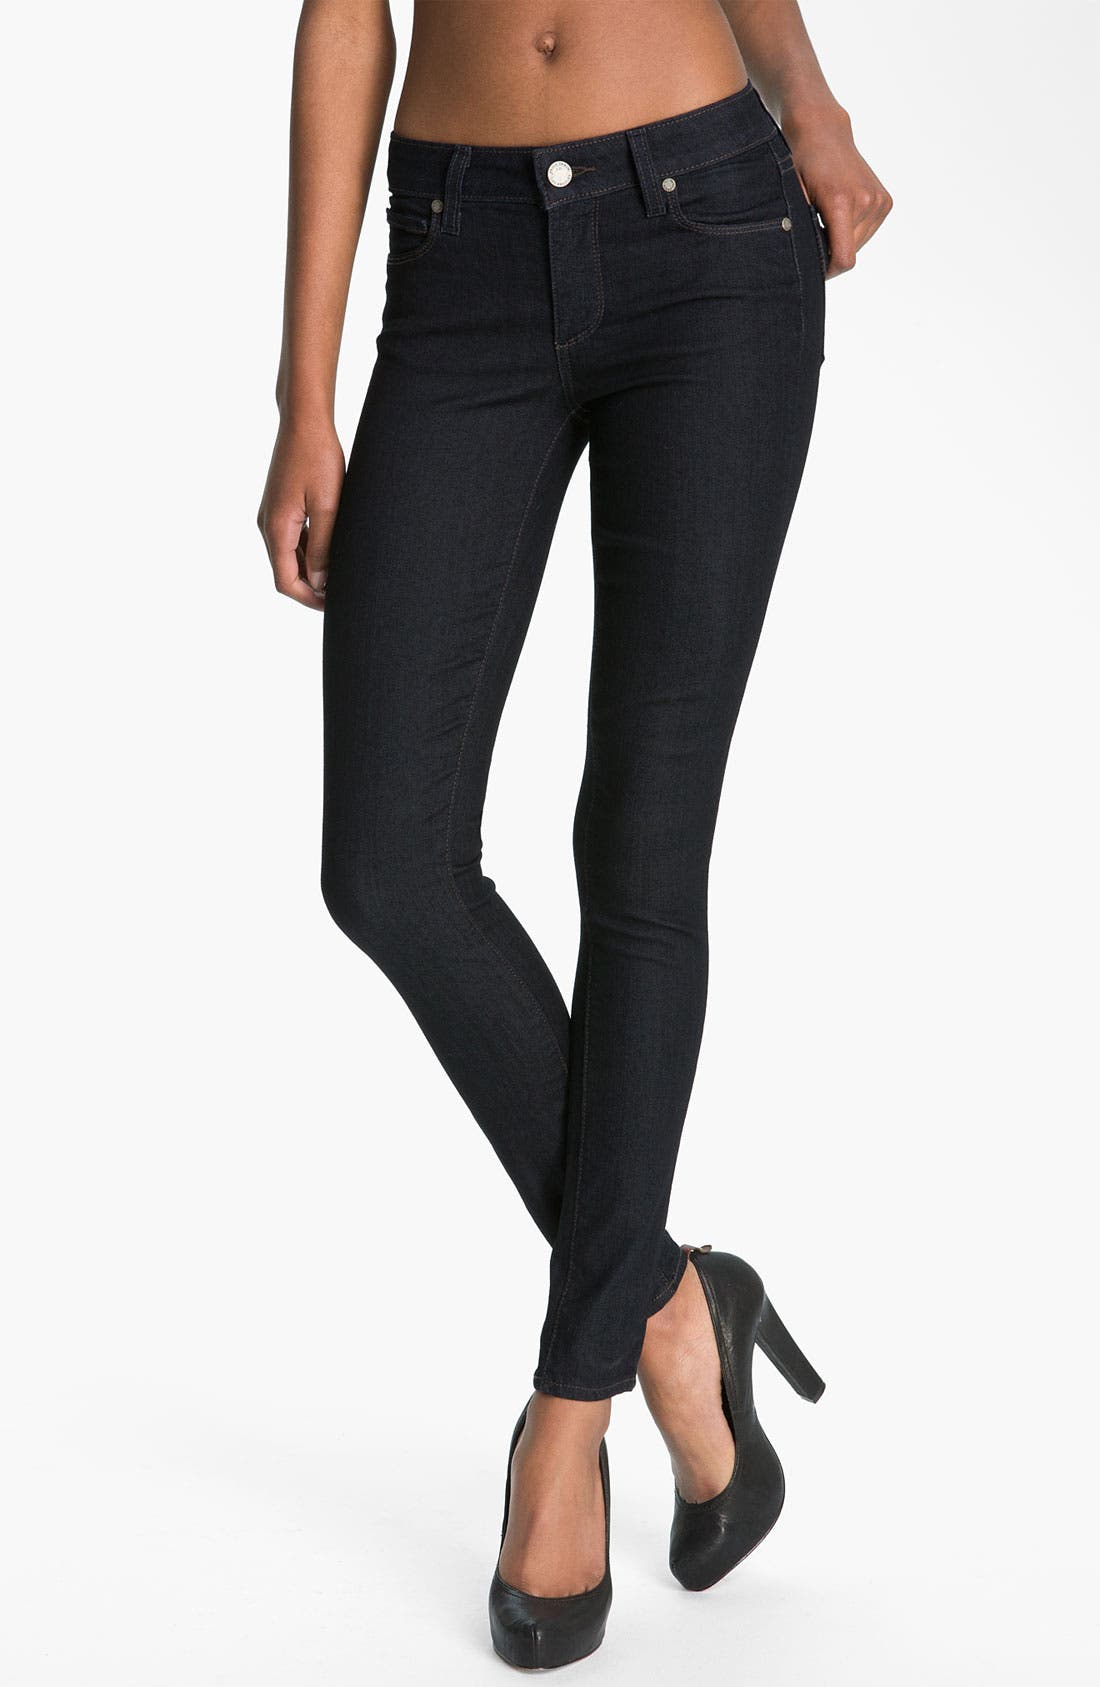 Find stretch denim leggings at ShopStyle. Shop the latest collection of stretch denim leggings from the most popular stores - all in one place.